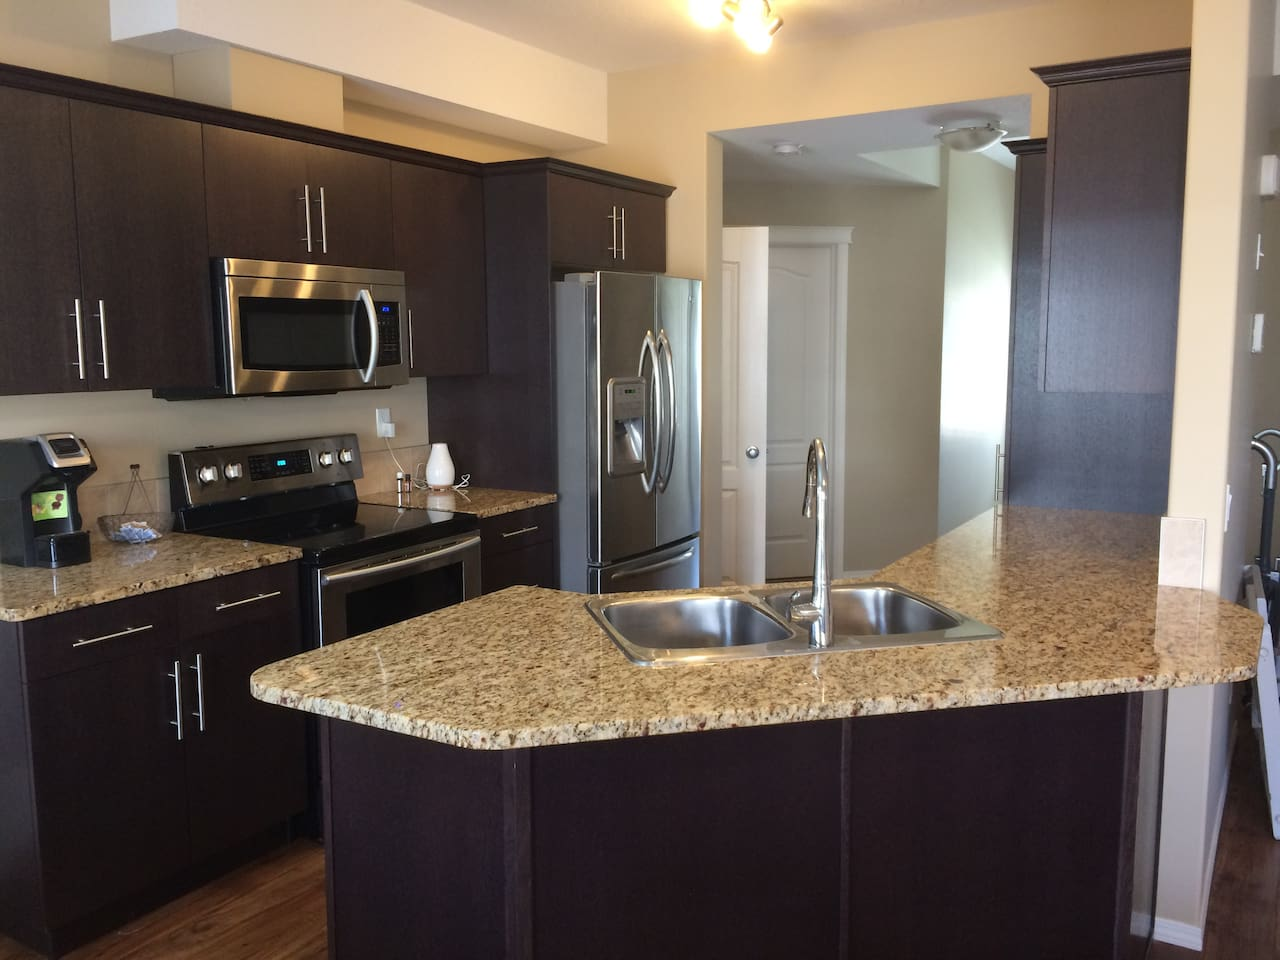 Kitchen with Granite Countertops, fridge has ice and water,  and dishwasher (not showing)